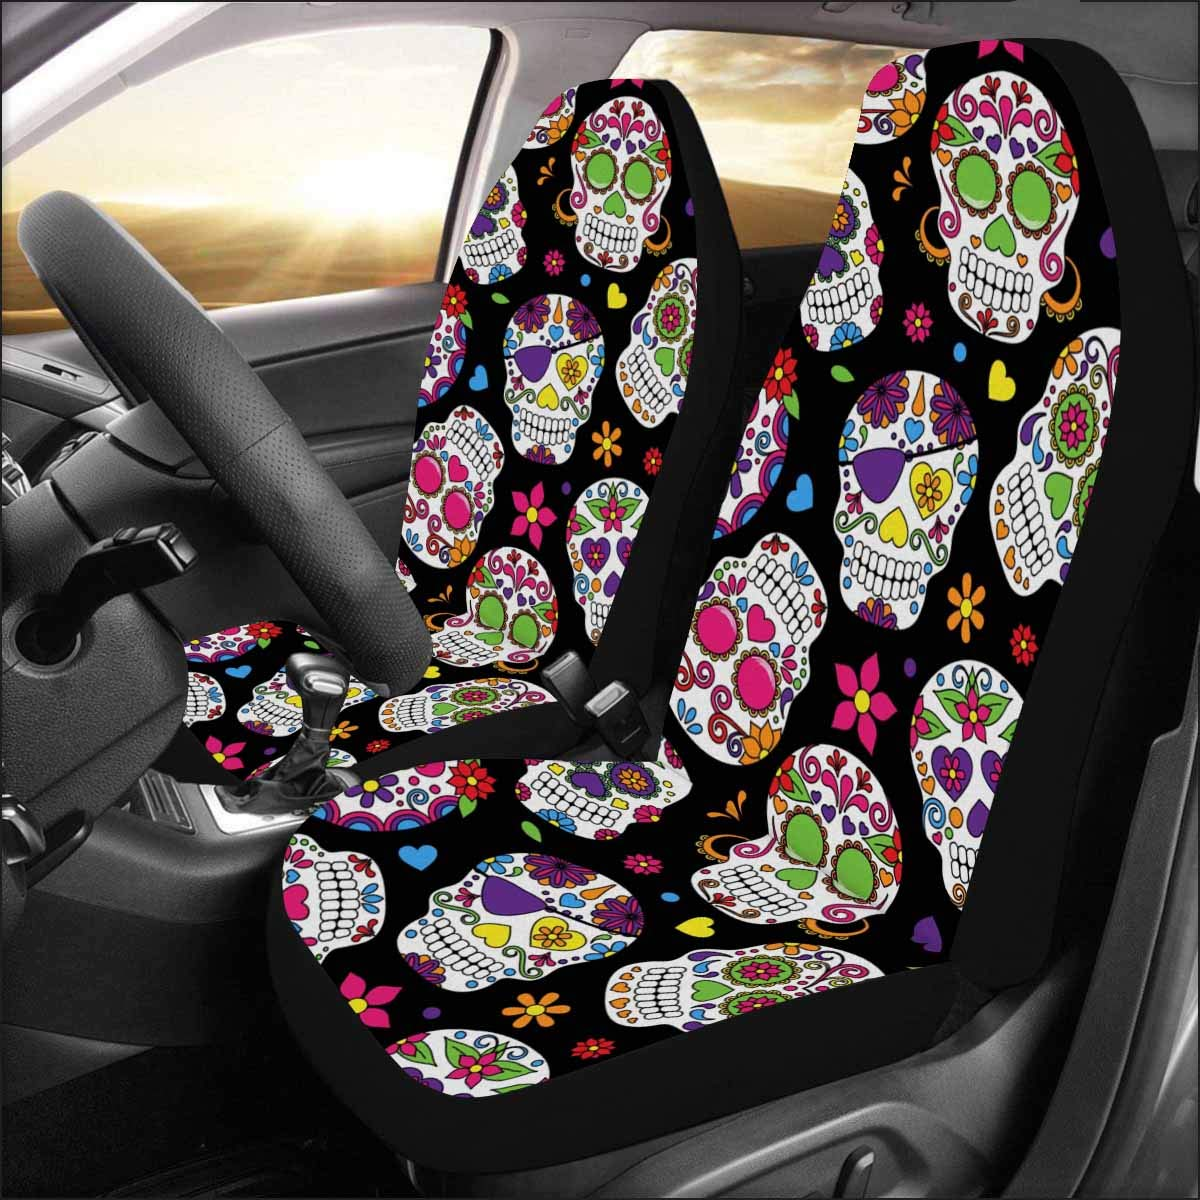 InterestPrint Auto Seat Protector 2 Pack Day Of The Dead Sugar Skull Car Covers Front